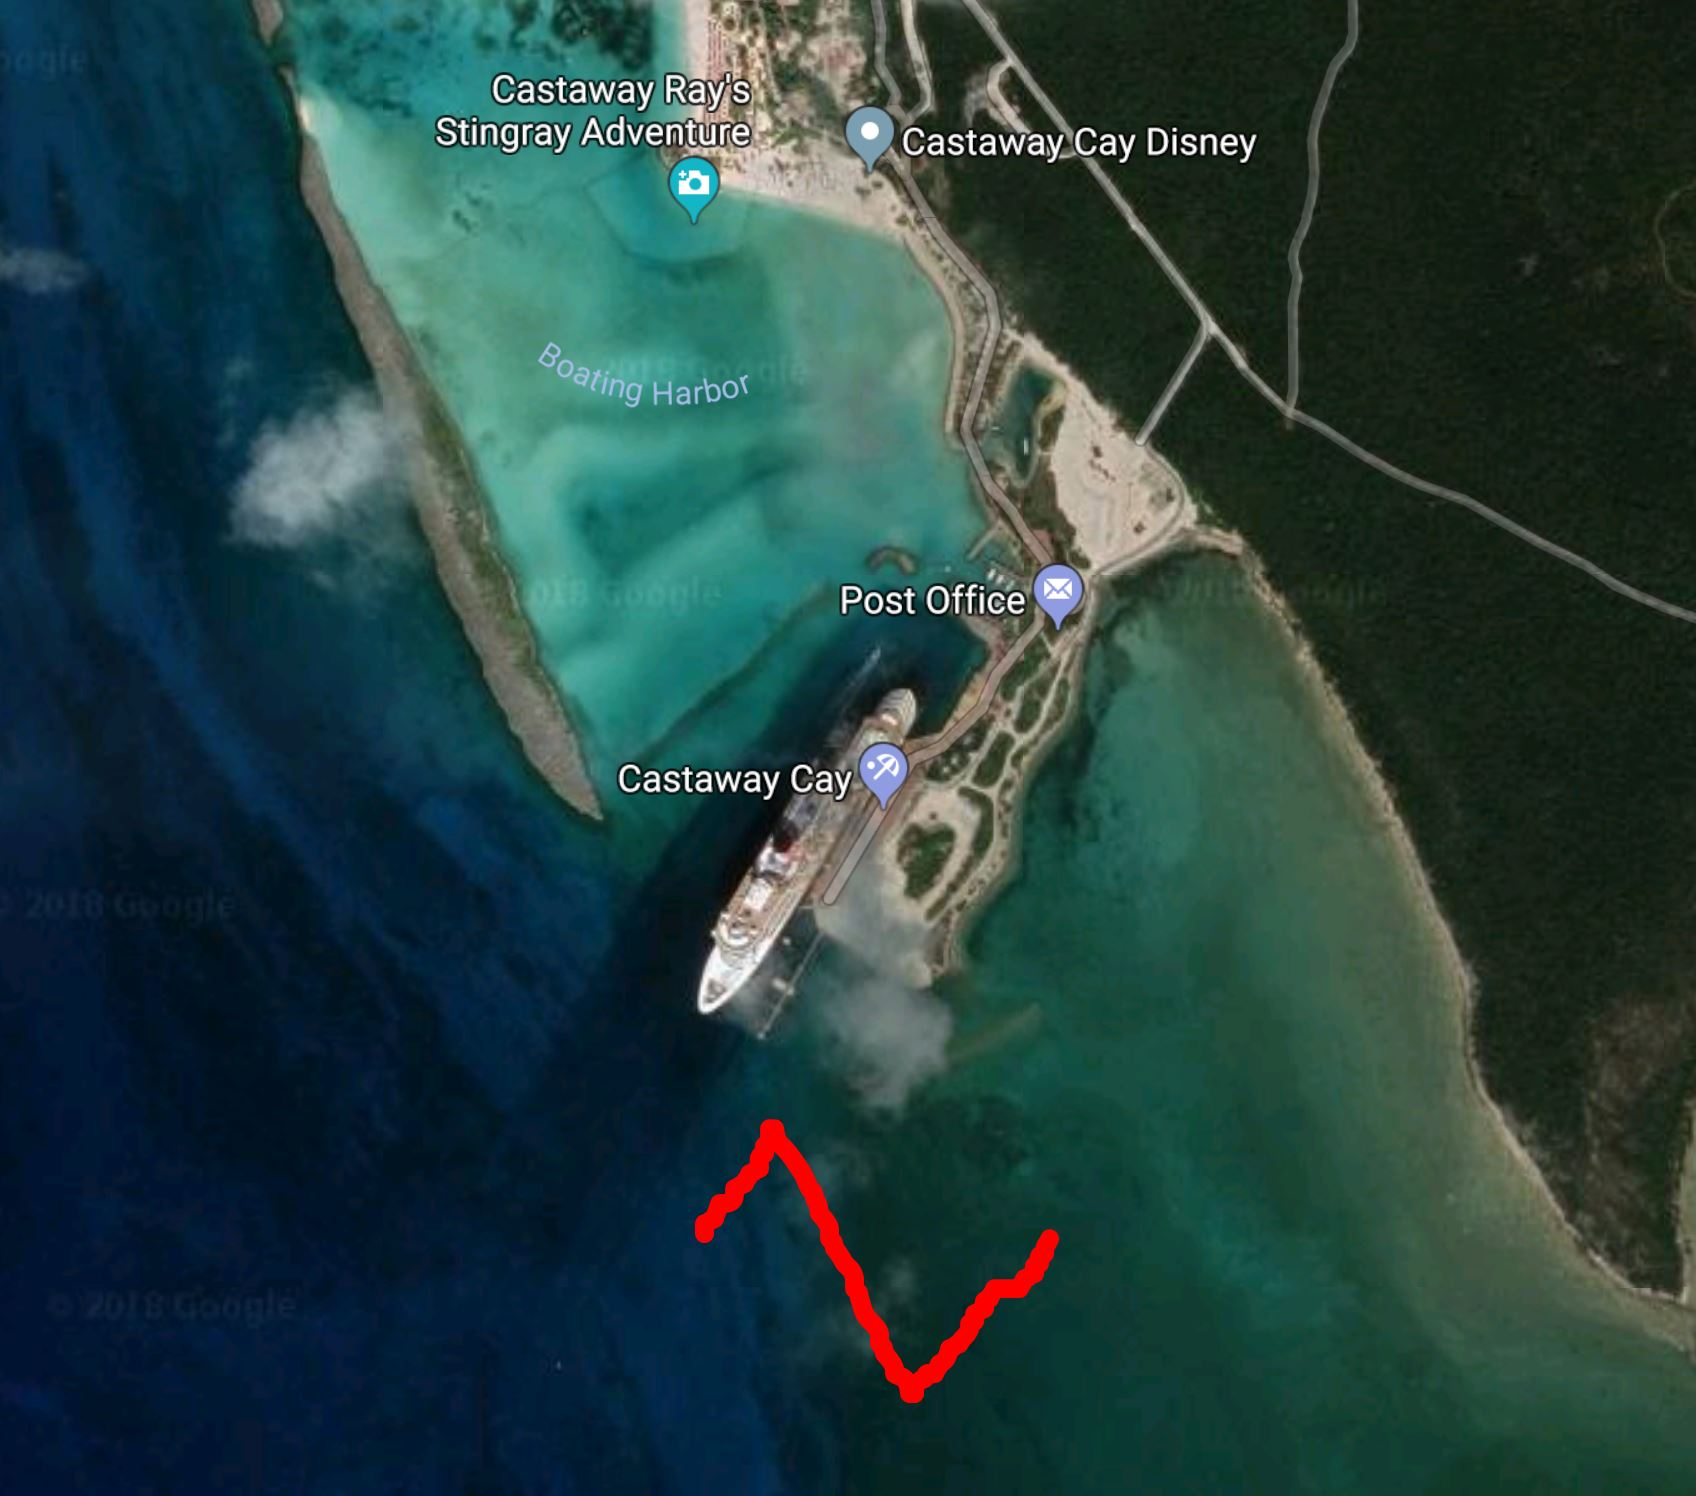 Fixing Castaway Cay port access for ships | The DIS Disney ... on great stirrup cay map, downtown disney, green turtle cay map, cozumel map, miami map, adventures by disney, disney's hollywood studios map, disney cruise line terminal, epcot map, disney wonder, norman's cay map, coco cay map, pillar point half moon bay map, private island map, disney's vero beach resort map, harbour island map, new providence, lyford cay map, private island, musha cay, disney cruise line, walt disney parks and resorts, nassau map, green turtle cay, cay sal map, disney dream, paradise island, hong kong disneyland resort, karl holz, disney's animal kingdom map, cay islands map, disney's river country map, downtown disney map, disney magic, shanghai disney resort, dubai map,